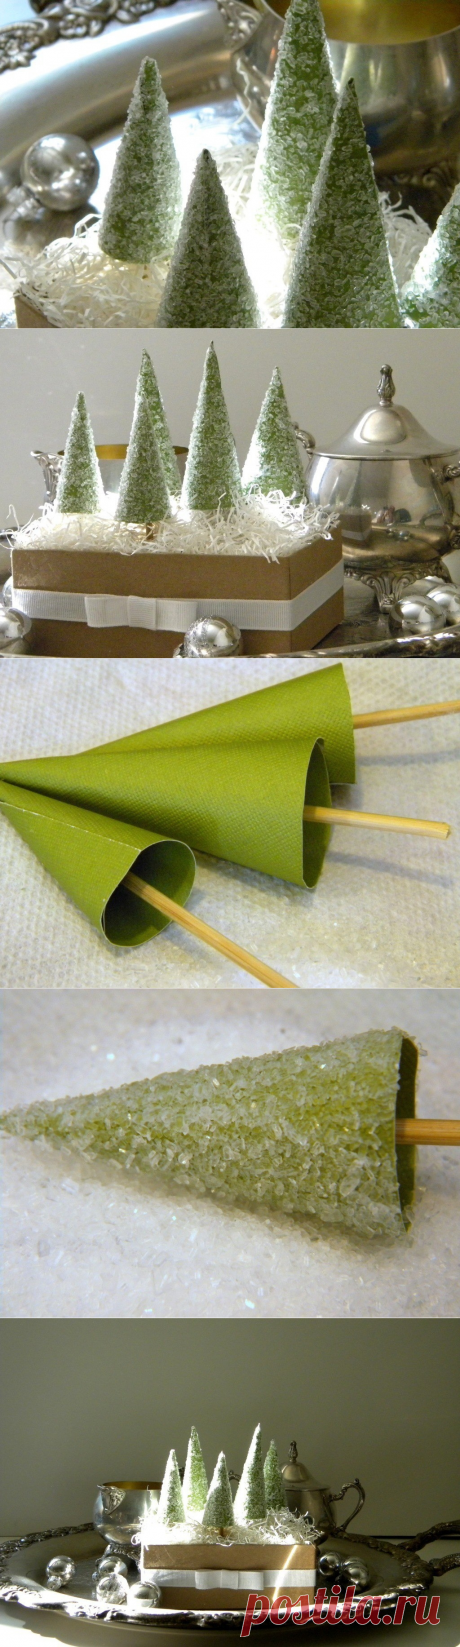 Gift decor fir-trees: we cover with glue a cone and we salt